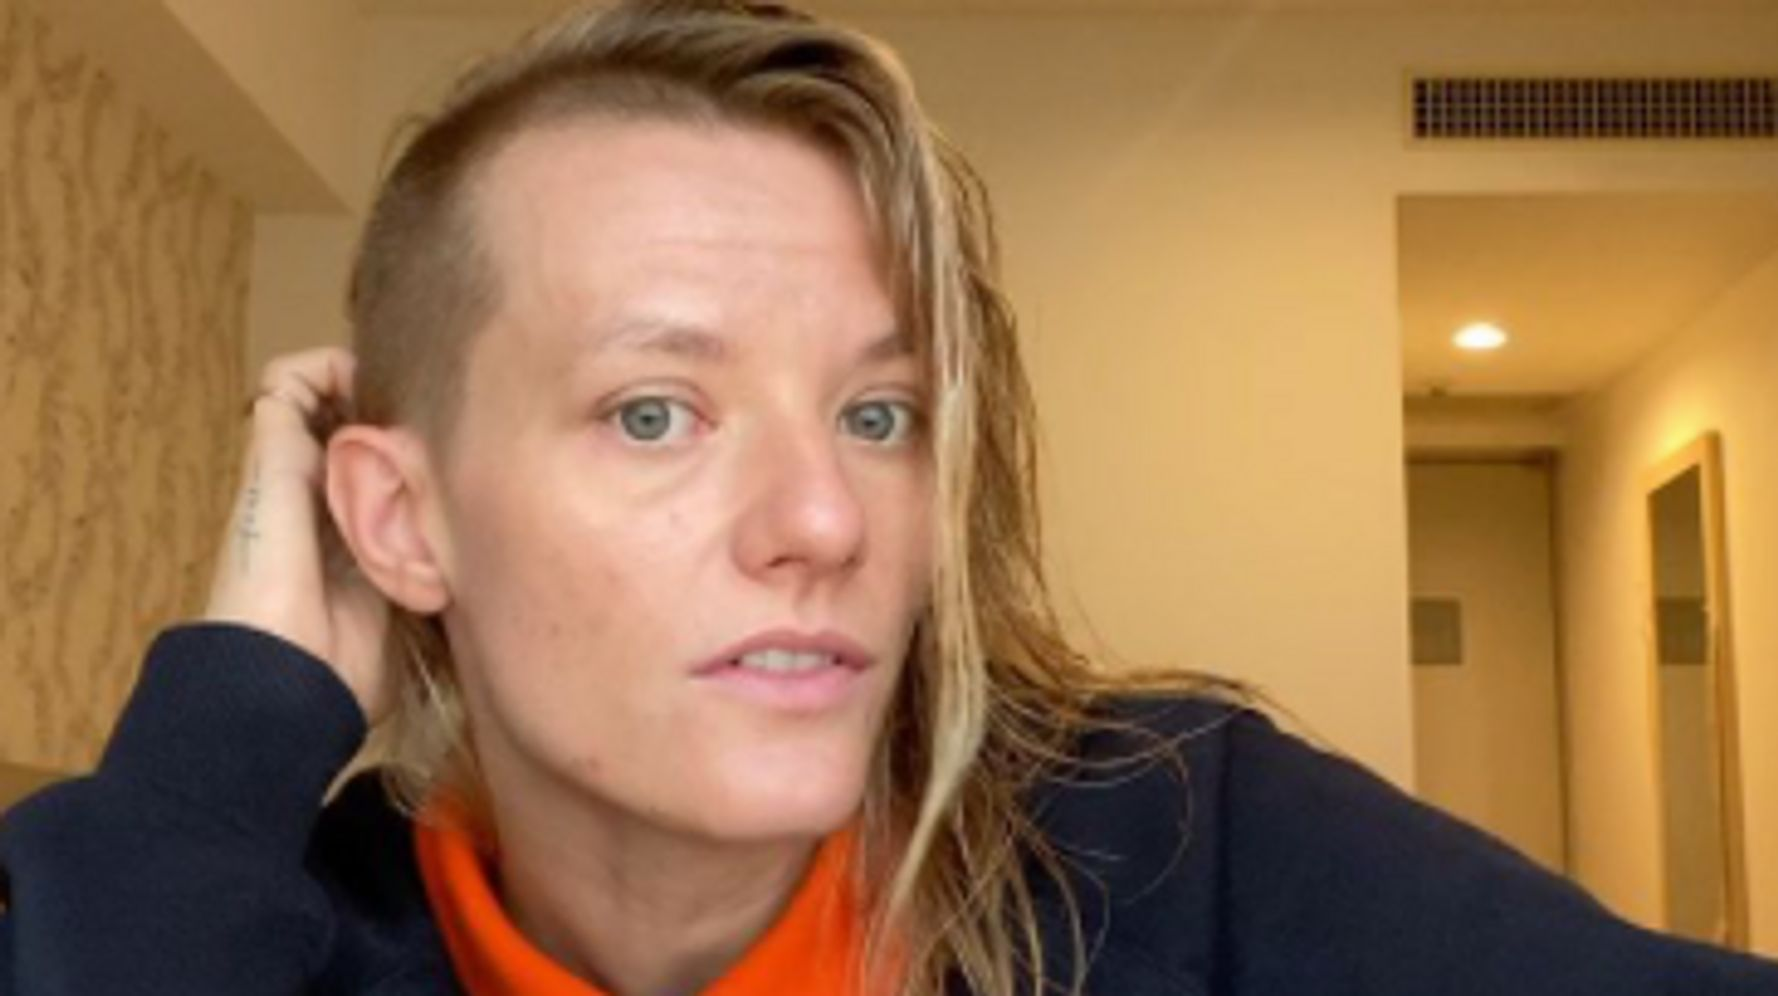 Olympian Who Tested Positive For COVID-19 Slams Quarantine Conditions As 'Inhuman'